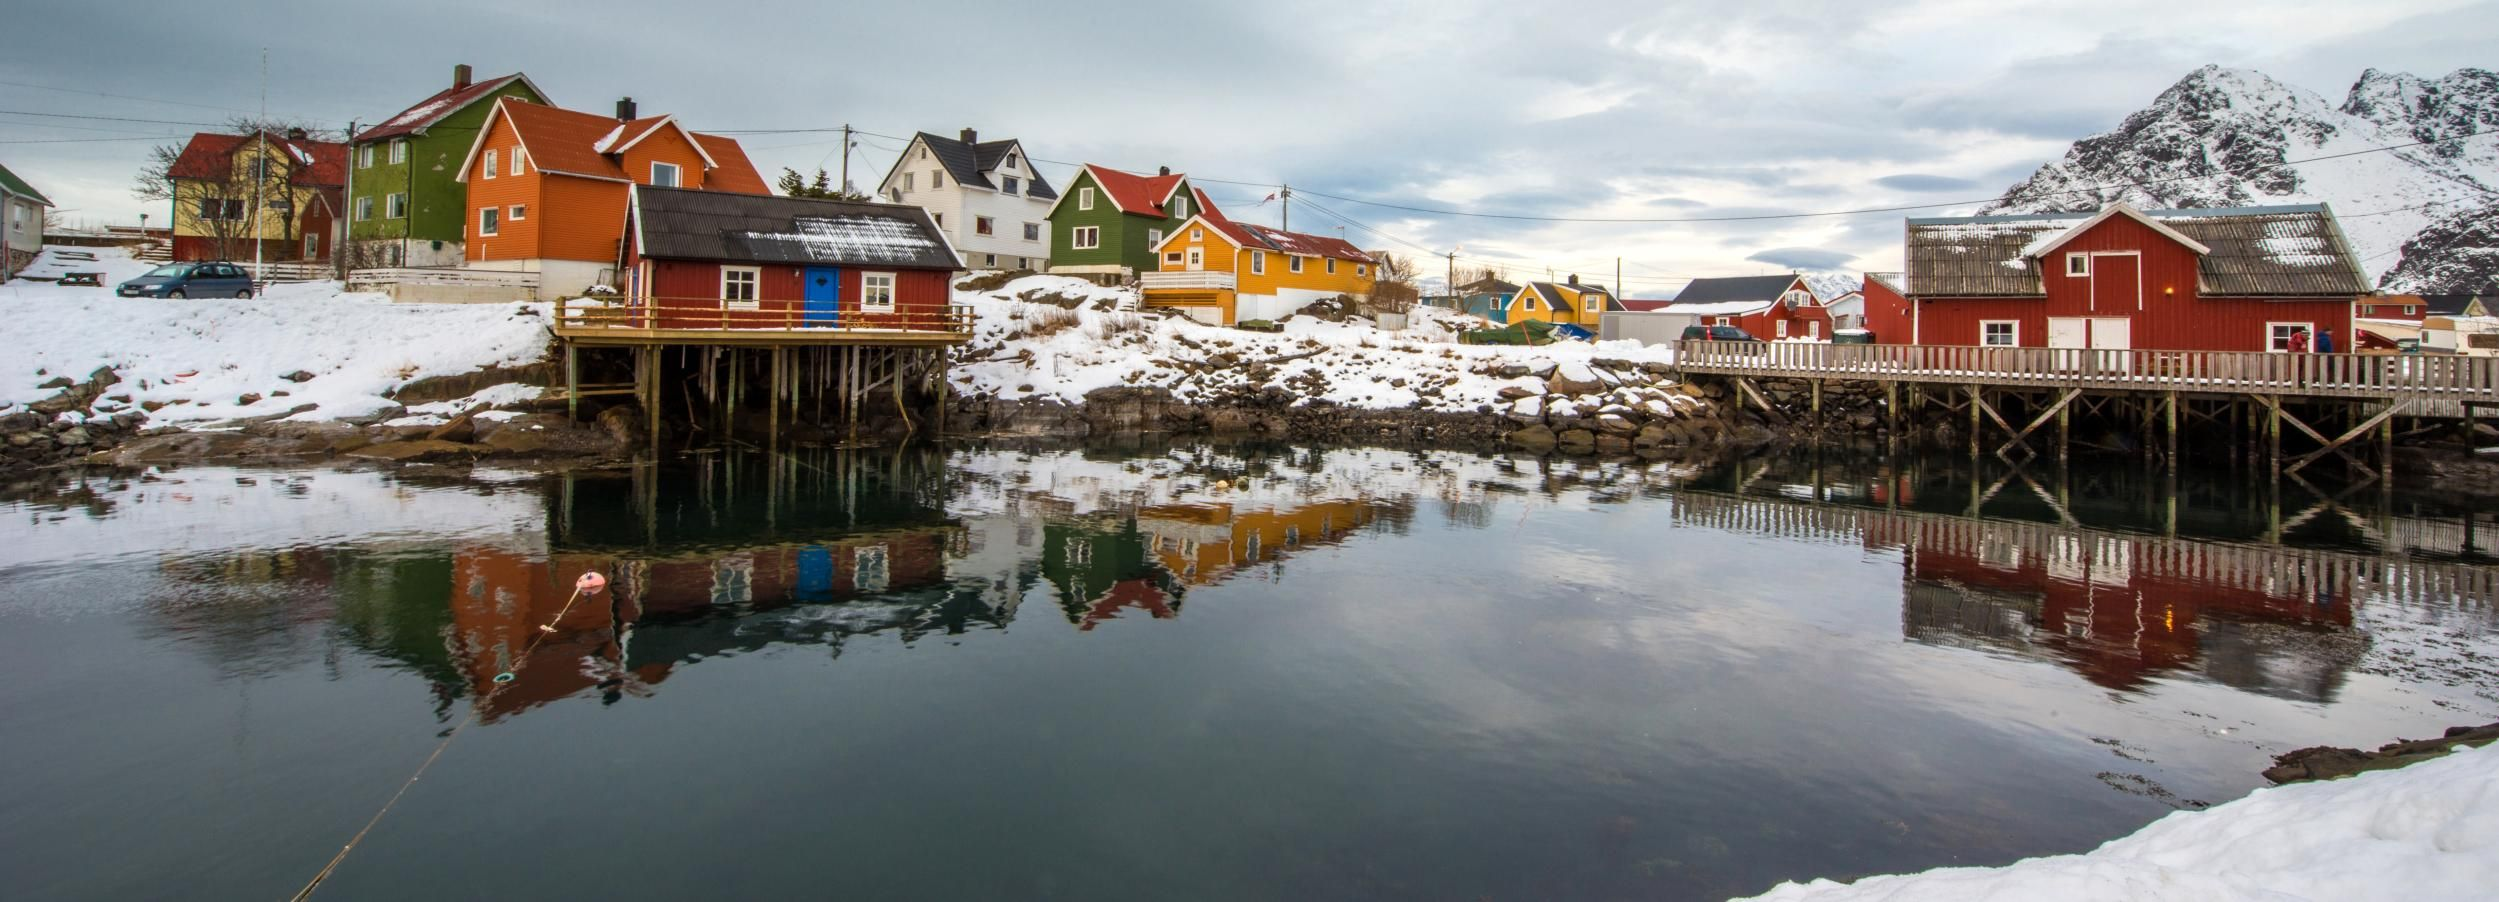 Photography Tour of the Lofoten Islands